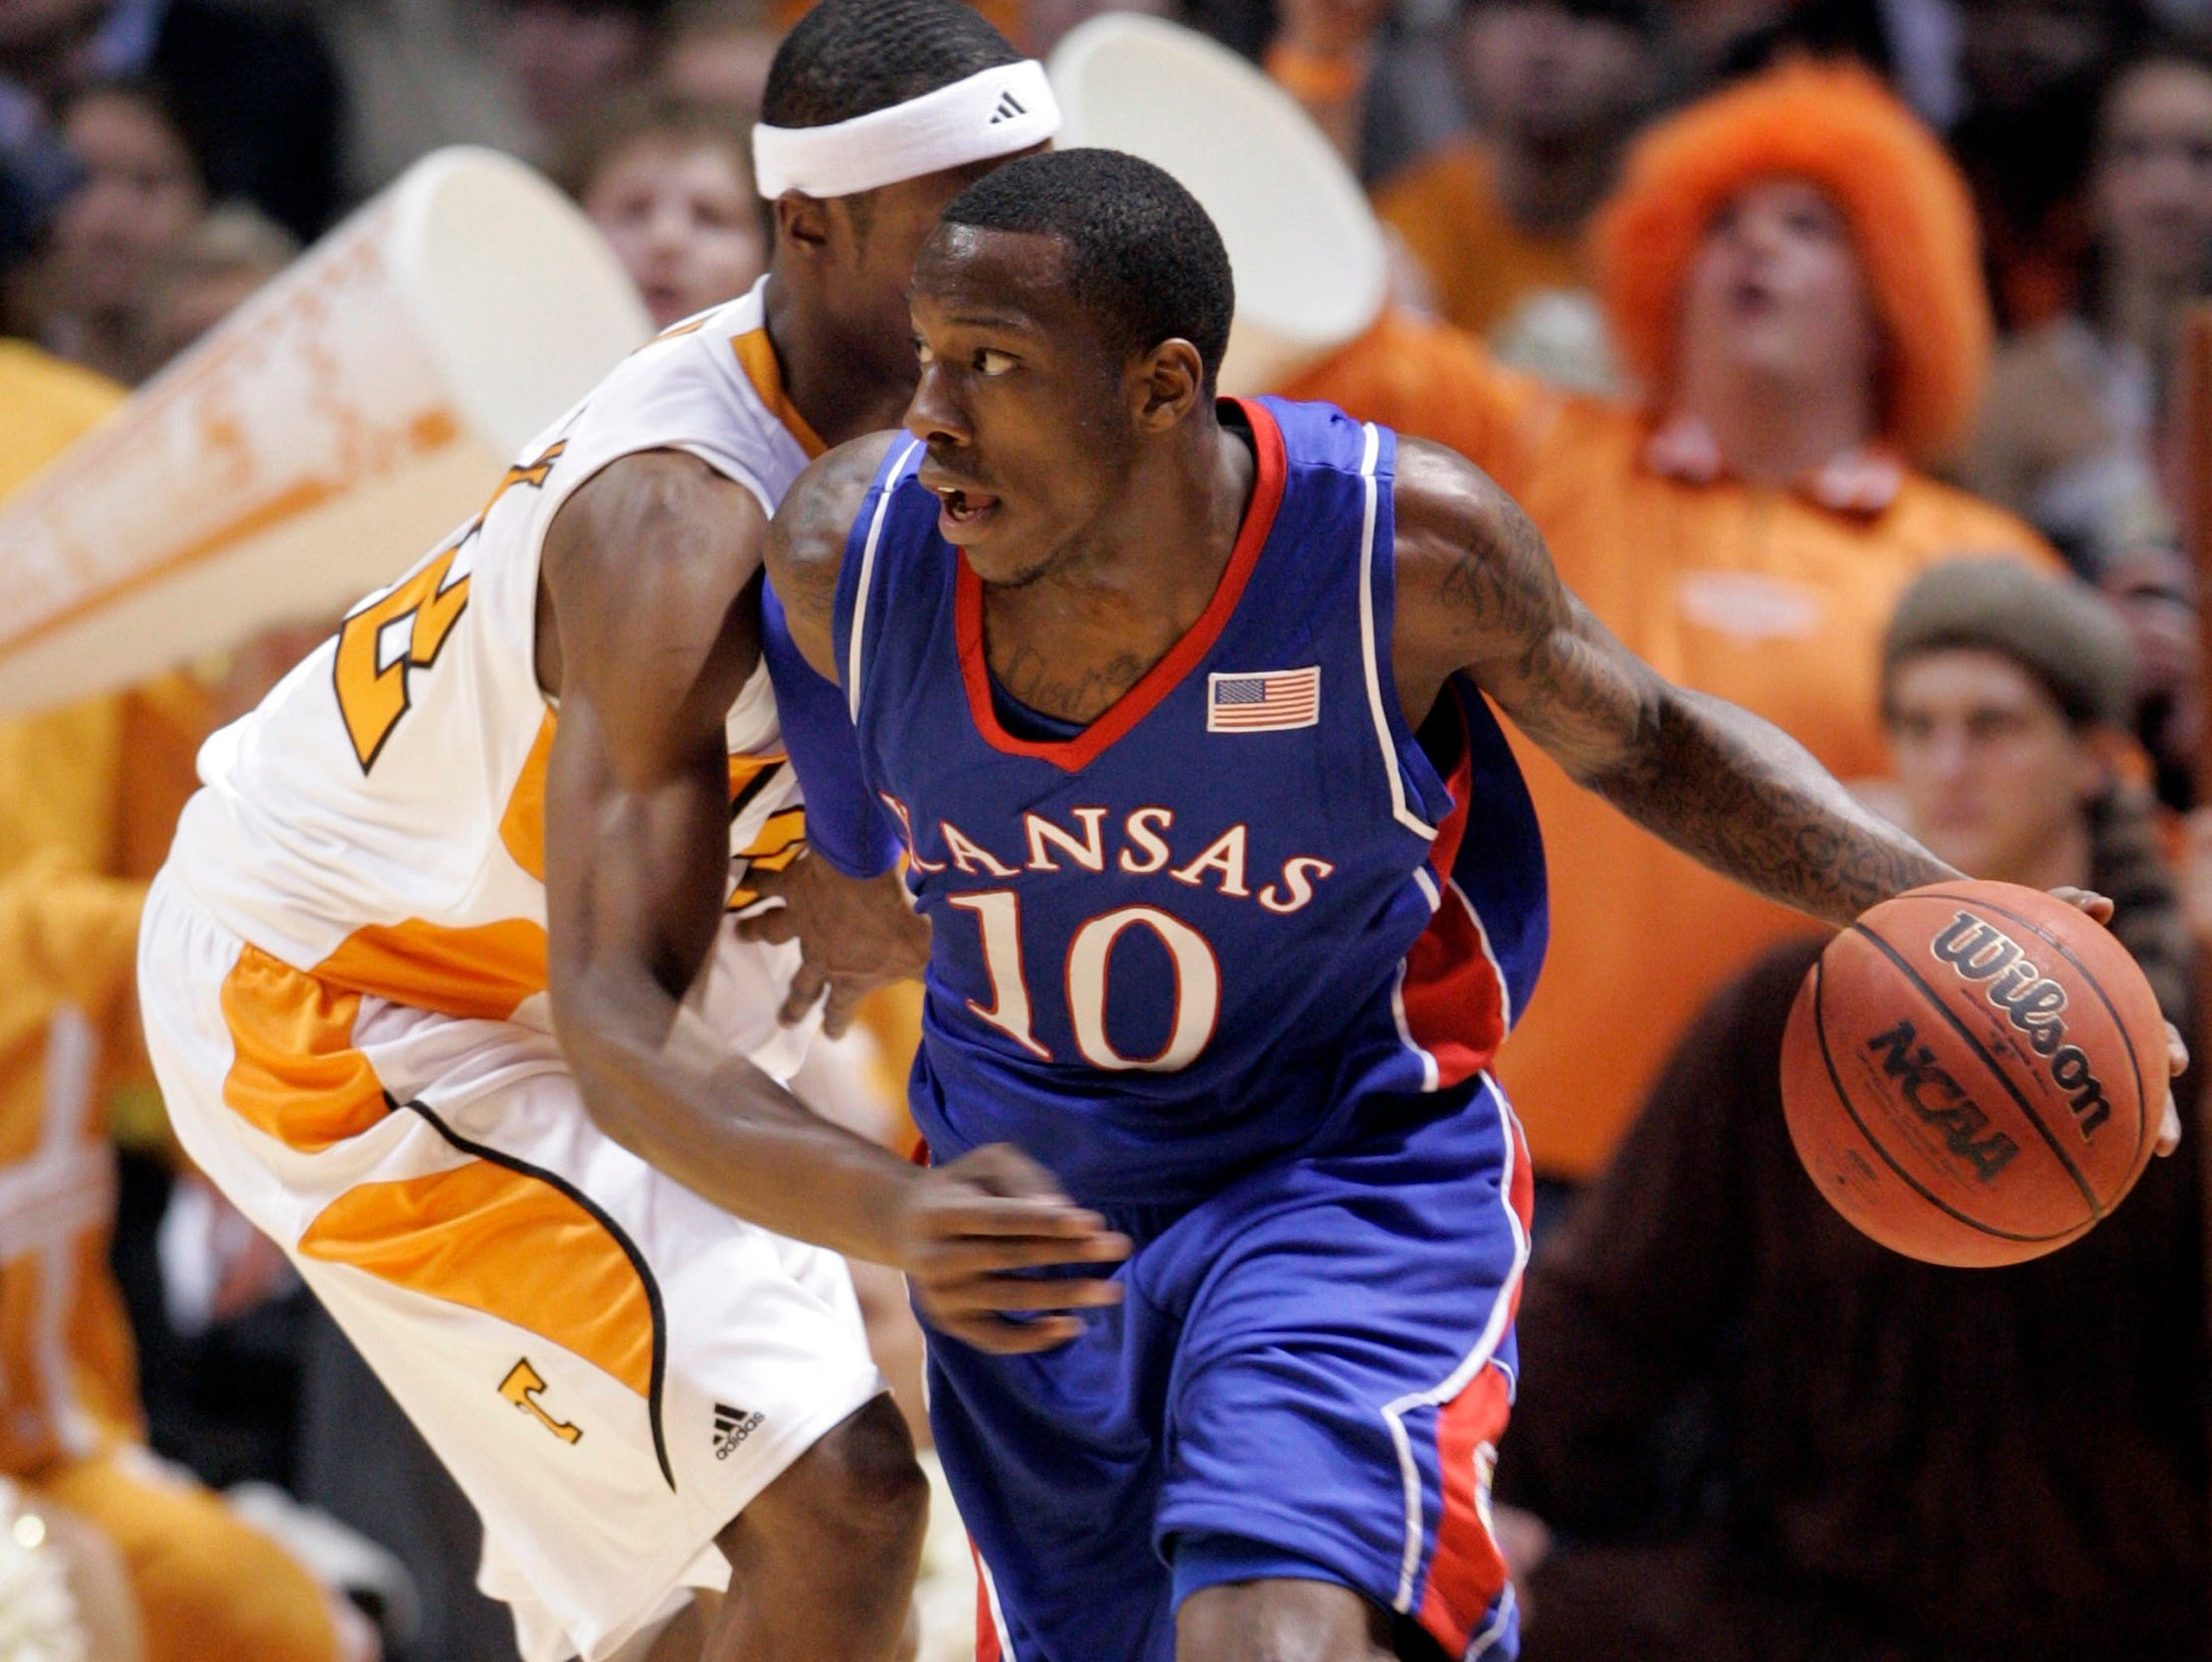 Kansas' Tyshawn Taylor (10) drives to the basket against Tennessee's Scotty Hopson (32) during the second half of an NCAA college basketball game Sunday, Jan. 10, 2010, in Knoxville, Tenn. Tennessee won 76-68.